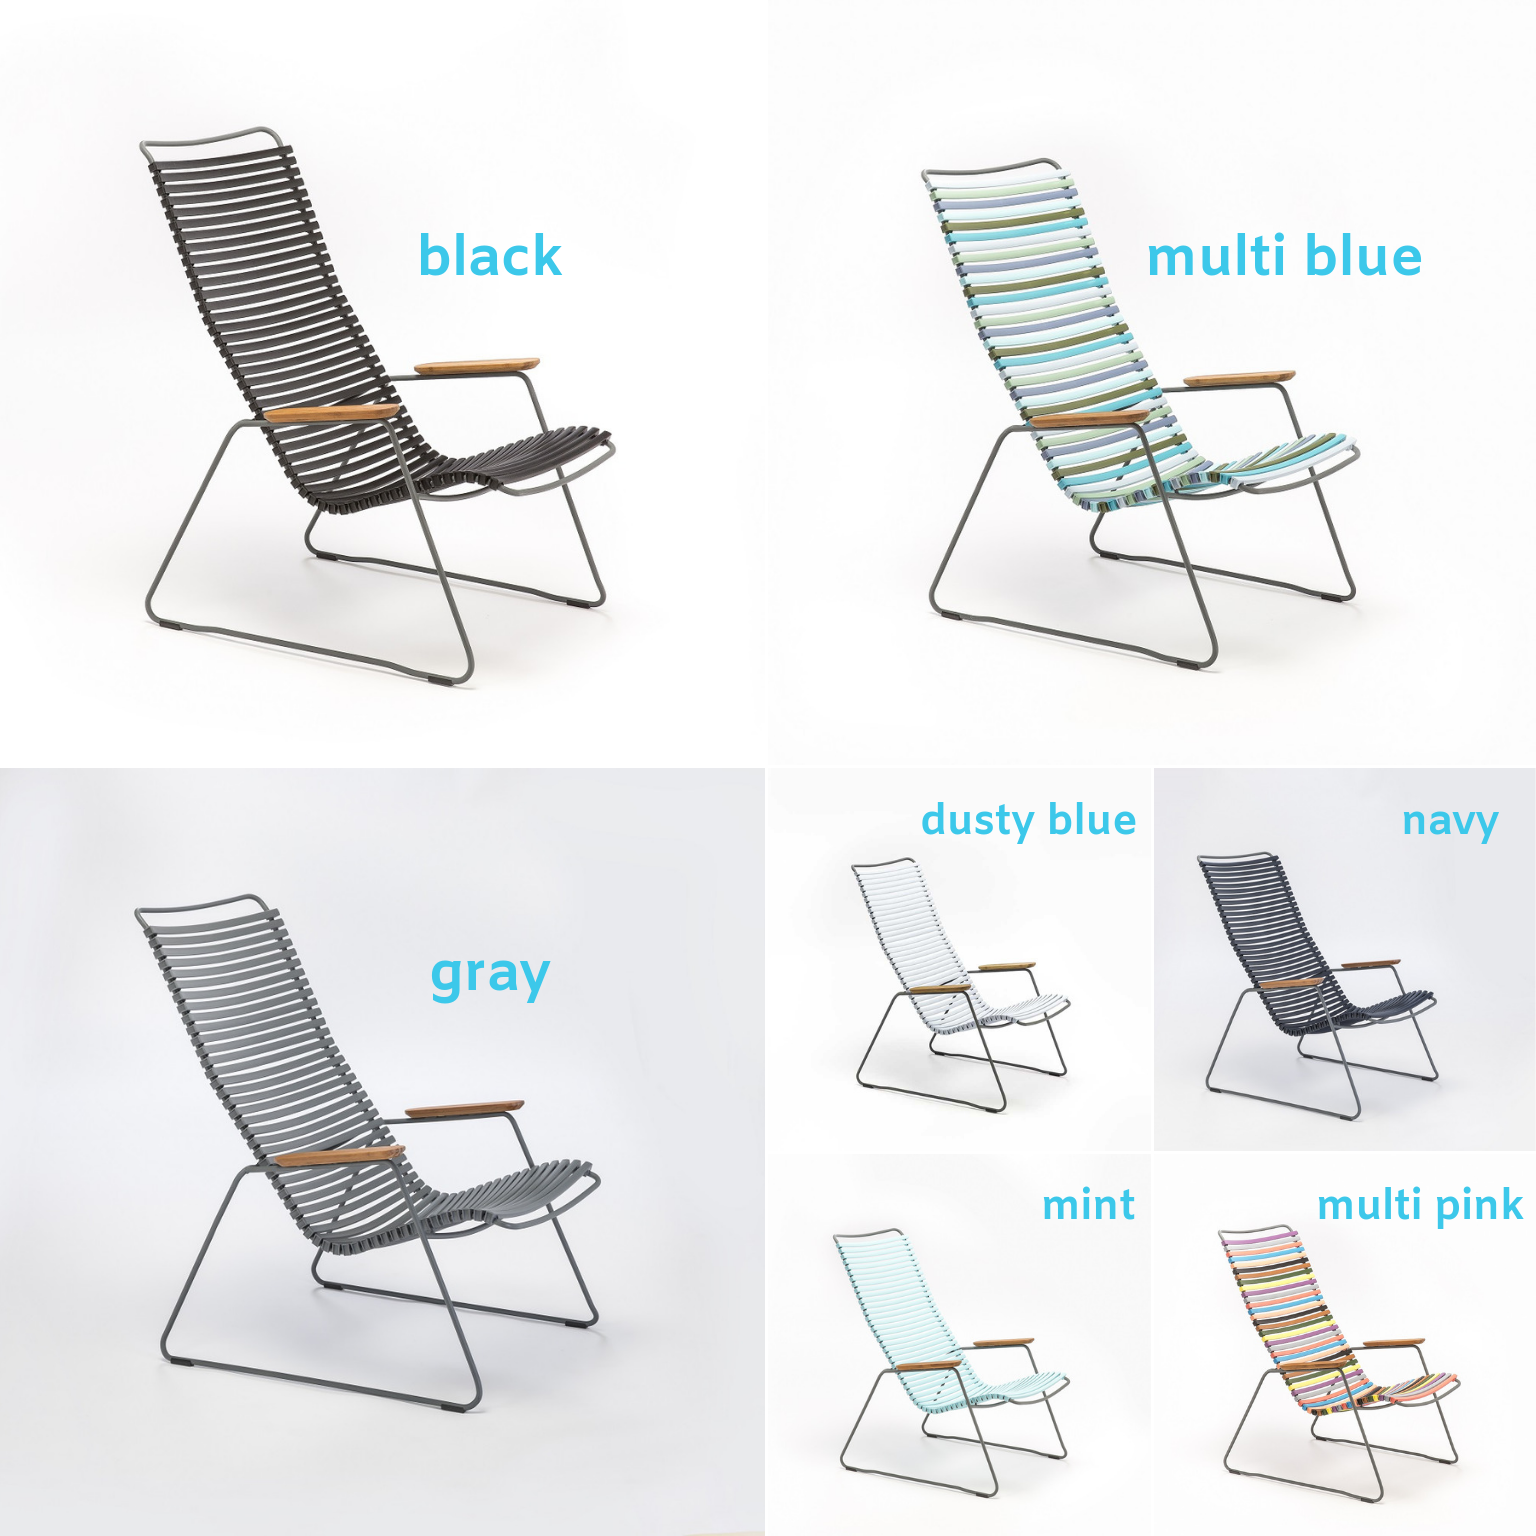 playnk-lounge-chair-colors are versatile and stylish